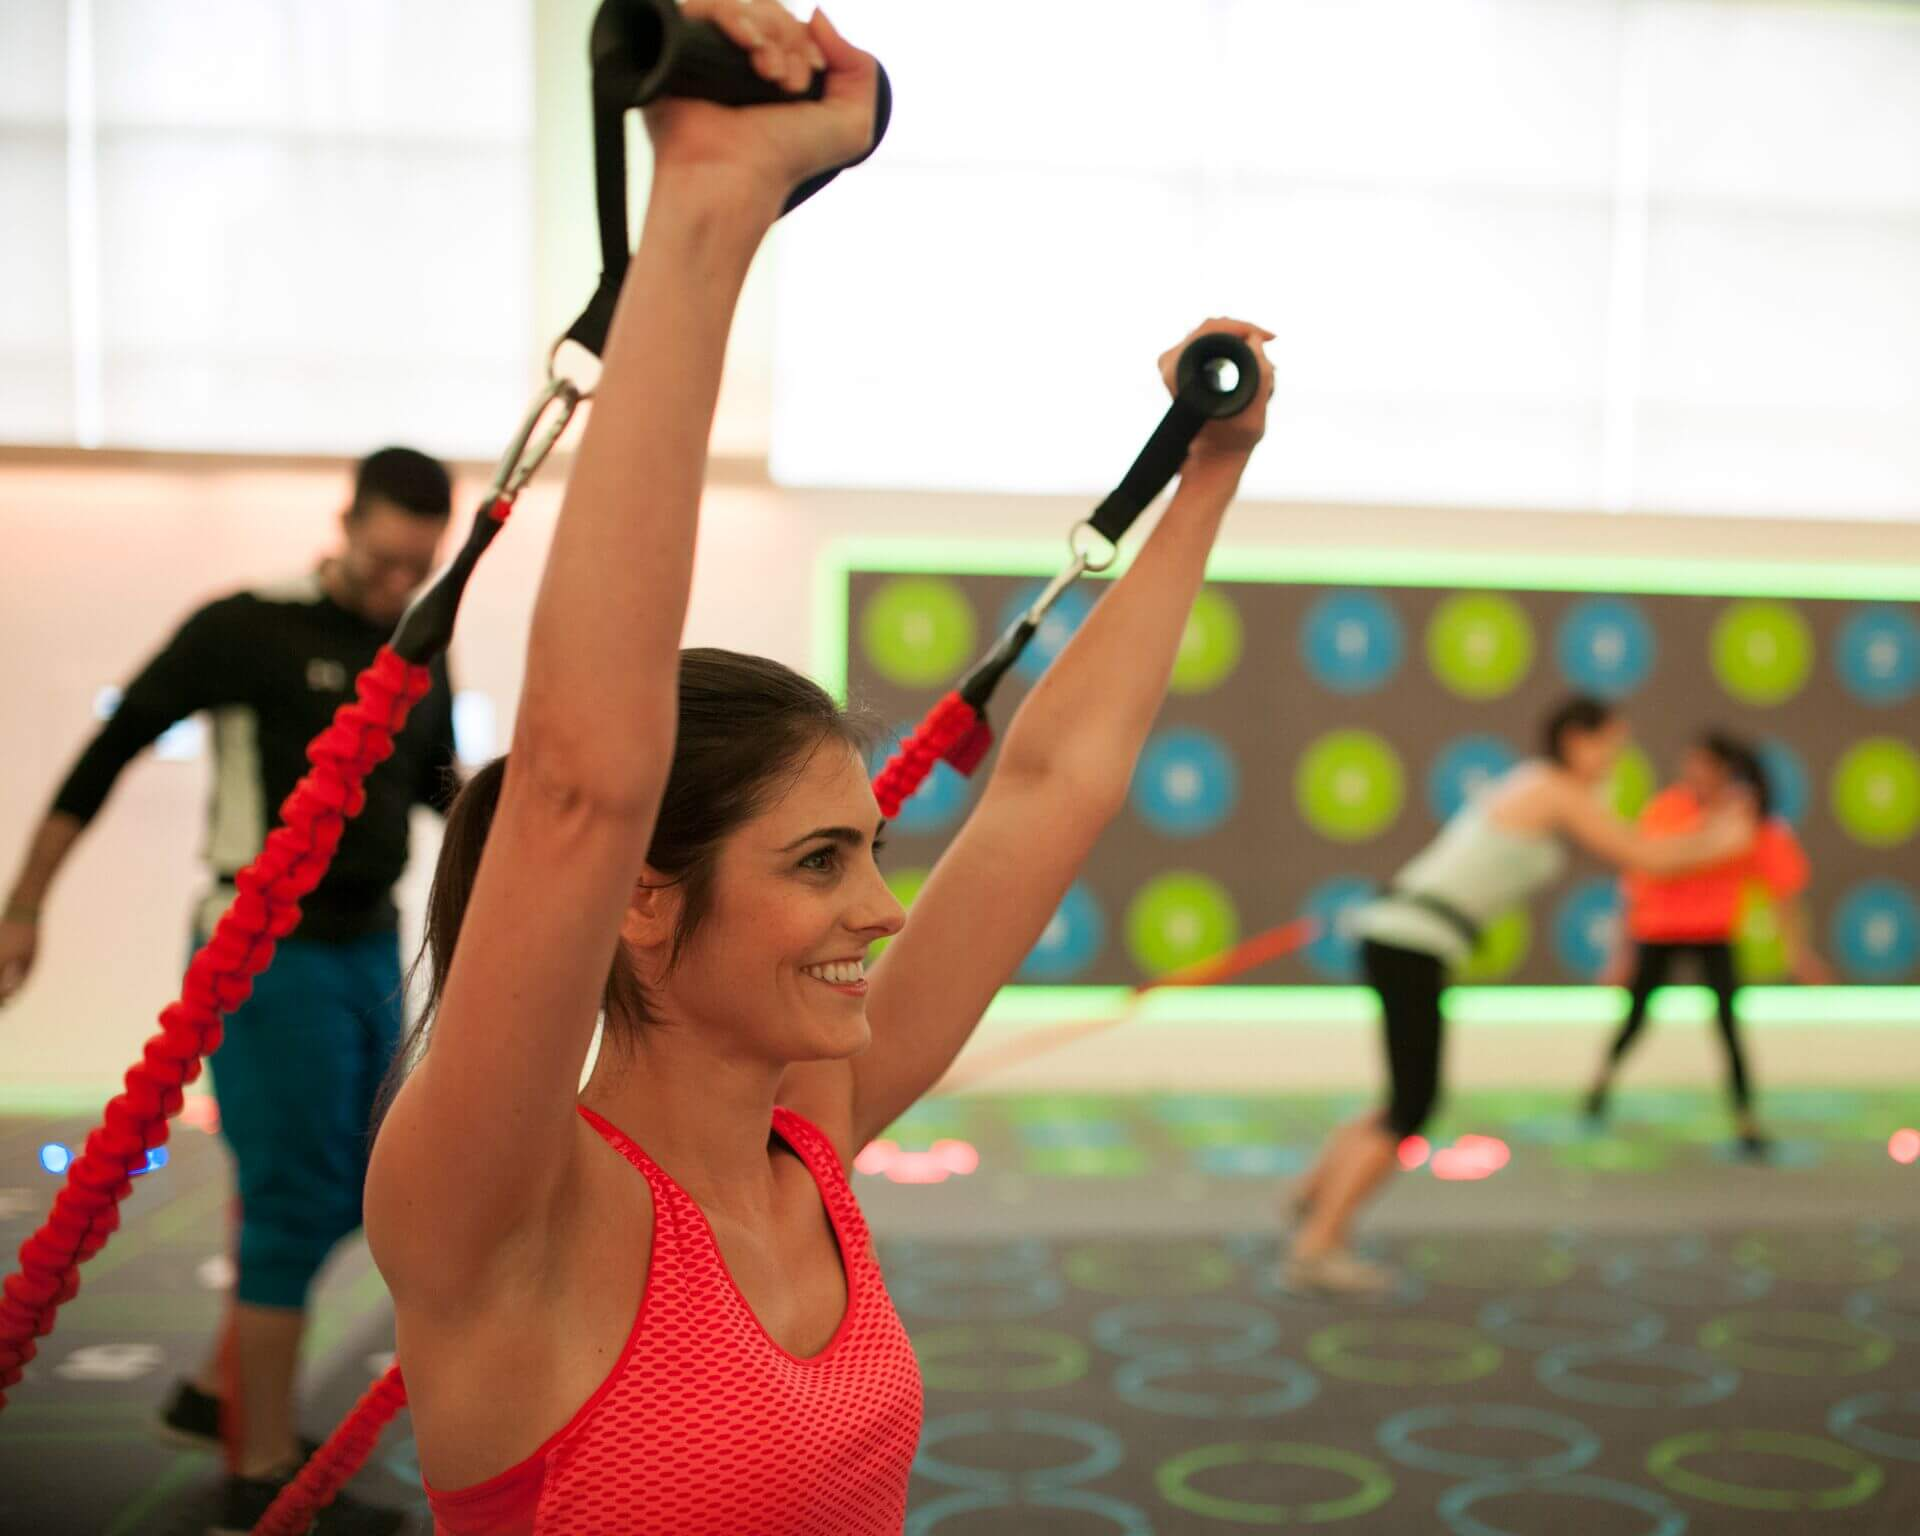 images Exercise Classes And Fitness Trends To Try In 2019